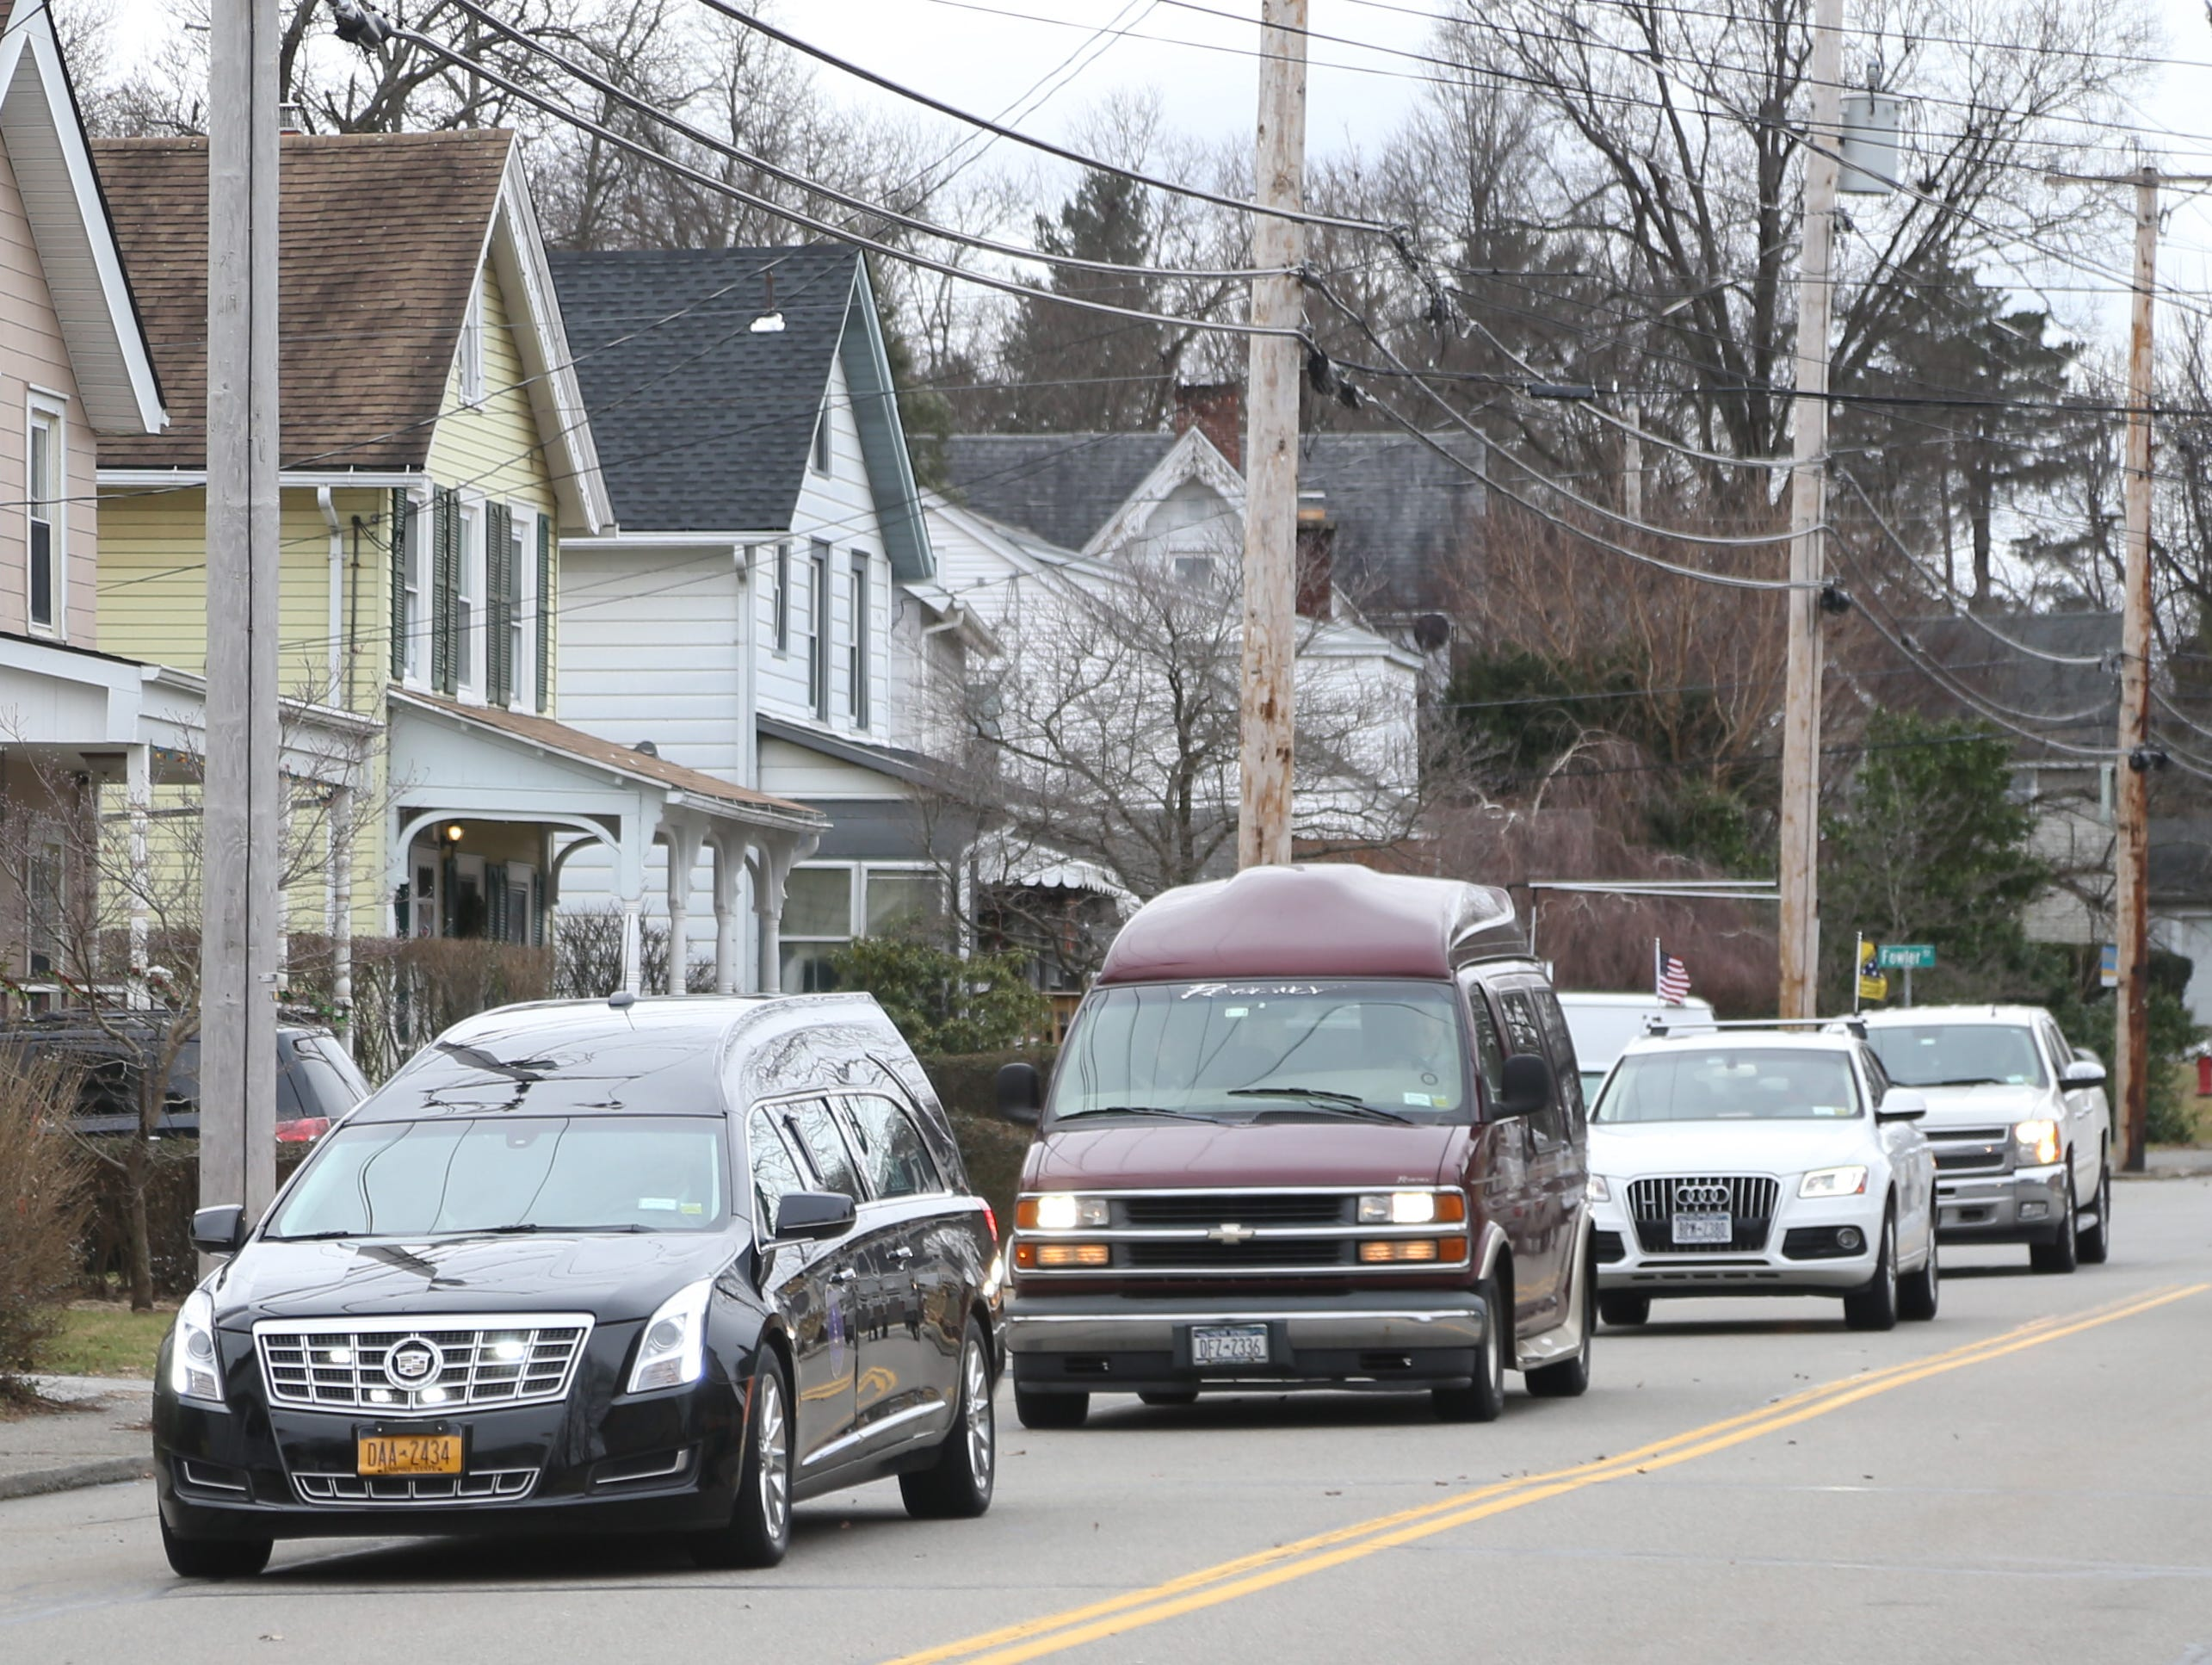 The funeral procession following Thursday's memorial service for four veterans at Libby Funeral Home in Beacon on January 10, 2019. The four veterans' cremains were in storage at the funeral home through several owners and are now being laid to rest at Calverton National Cemetery on Long Island.